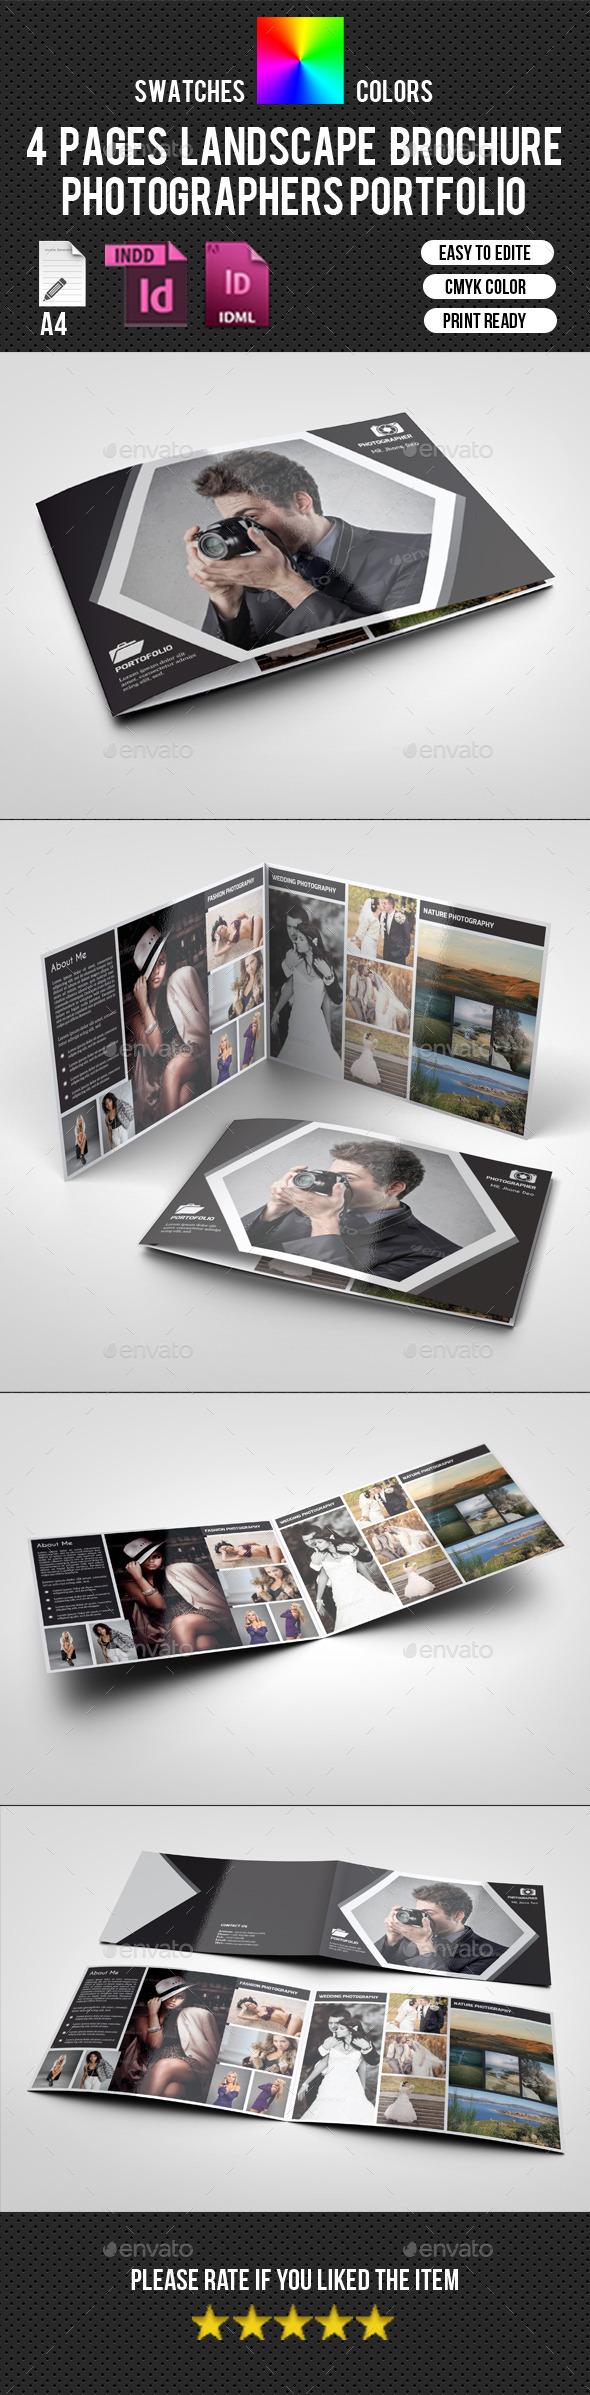 GraphicRiver 4 Pages Landscape Photography Brochure-V197 10392938